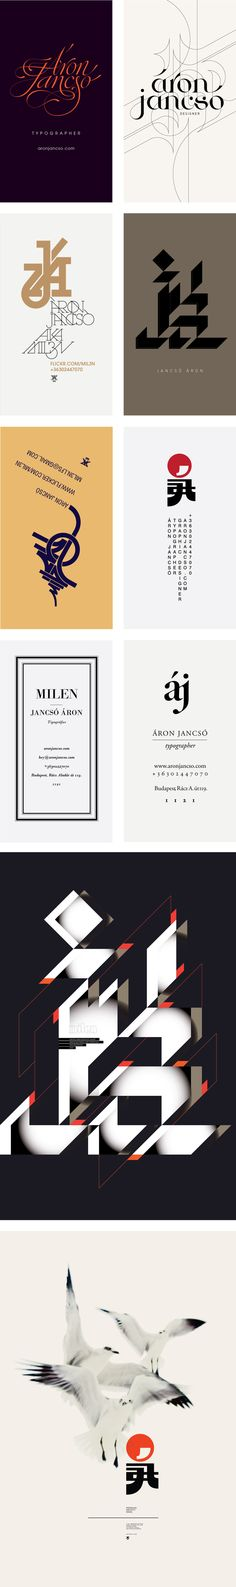 Posters designed byÁron Jancsó. LOVE #1,2 and 8 :-) absolutely gorgeous!!